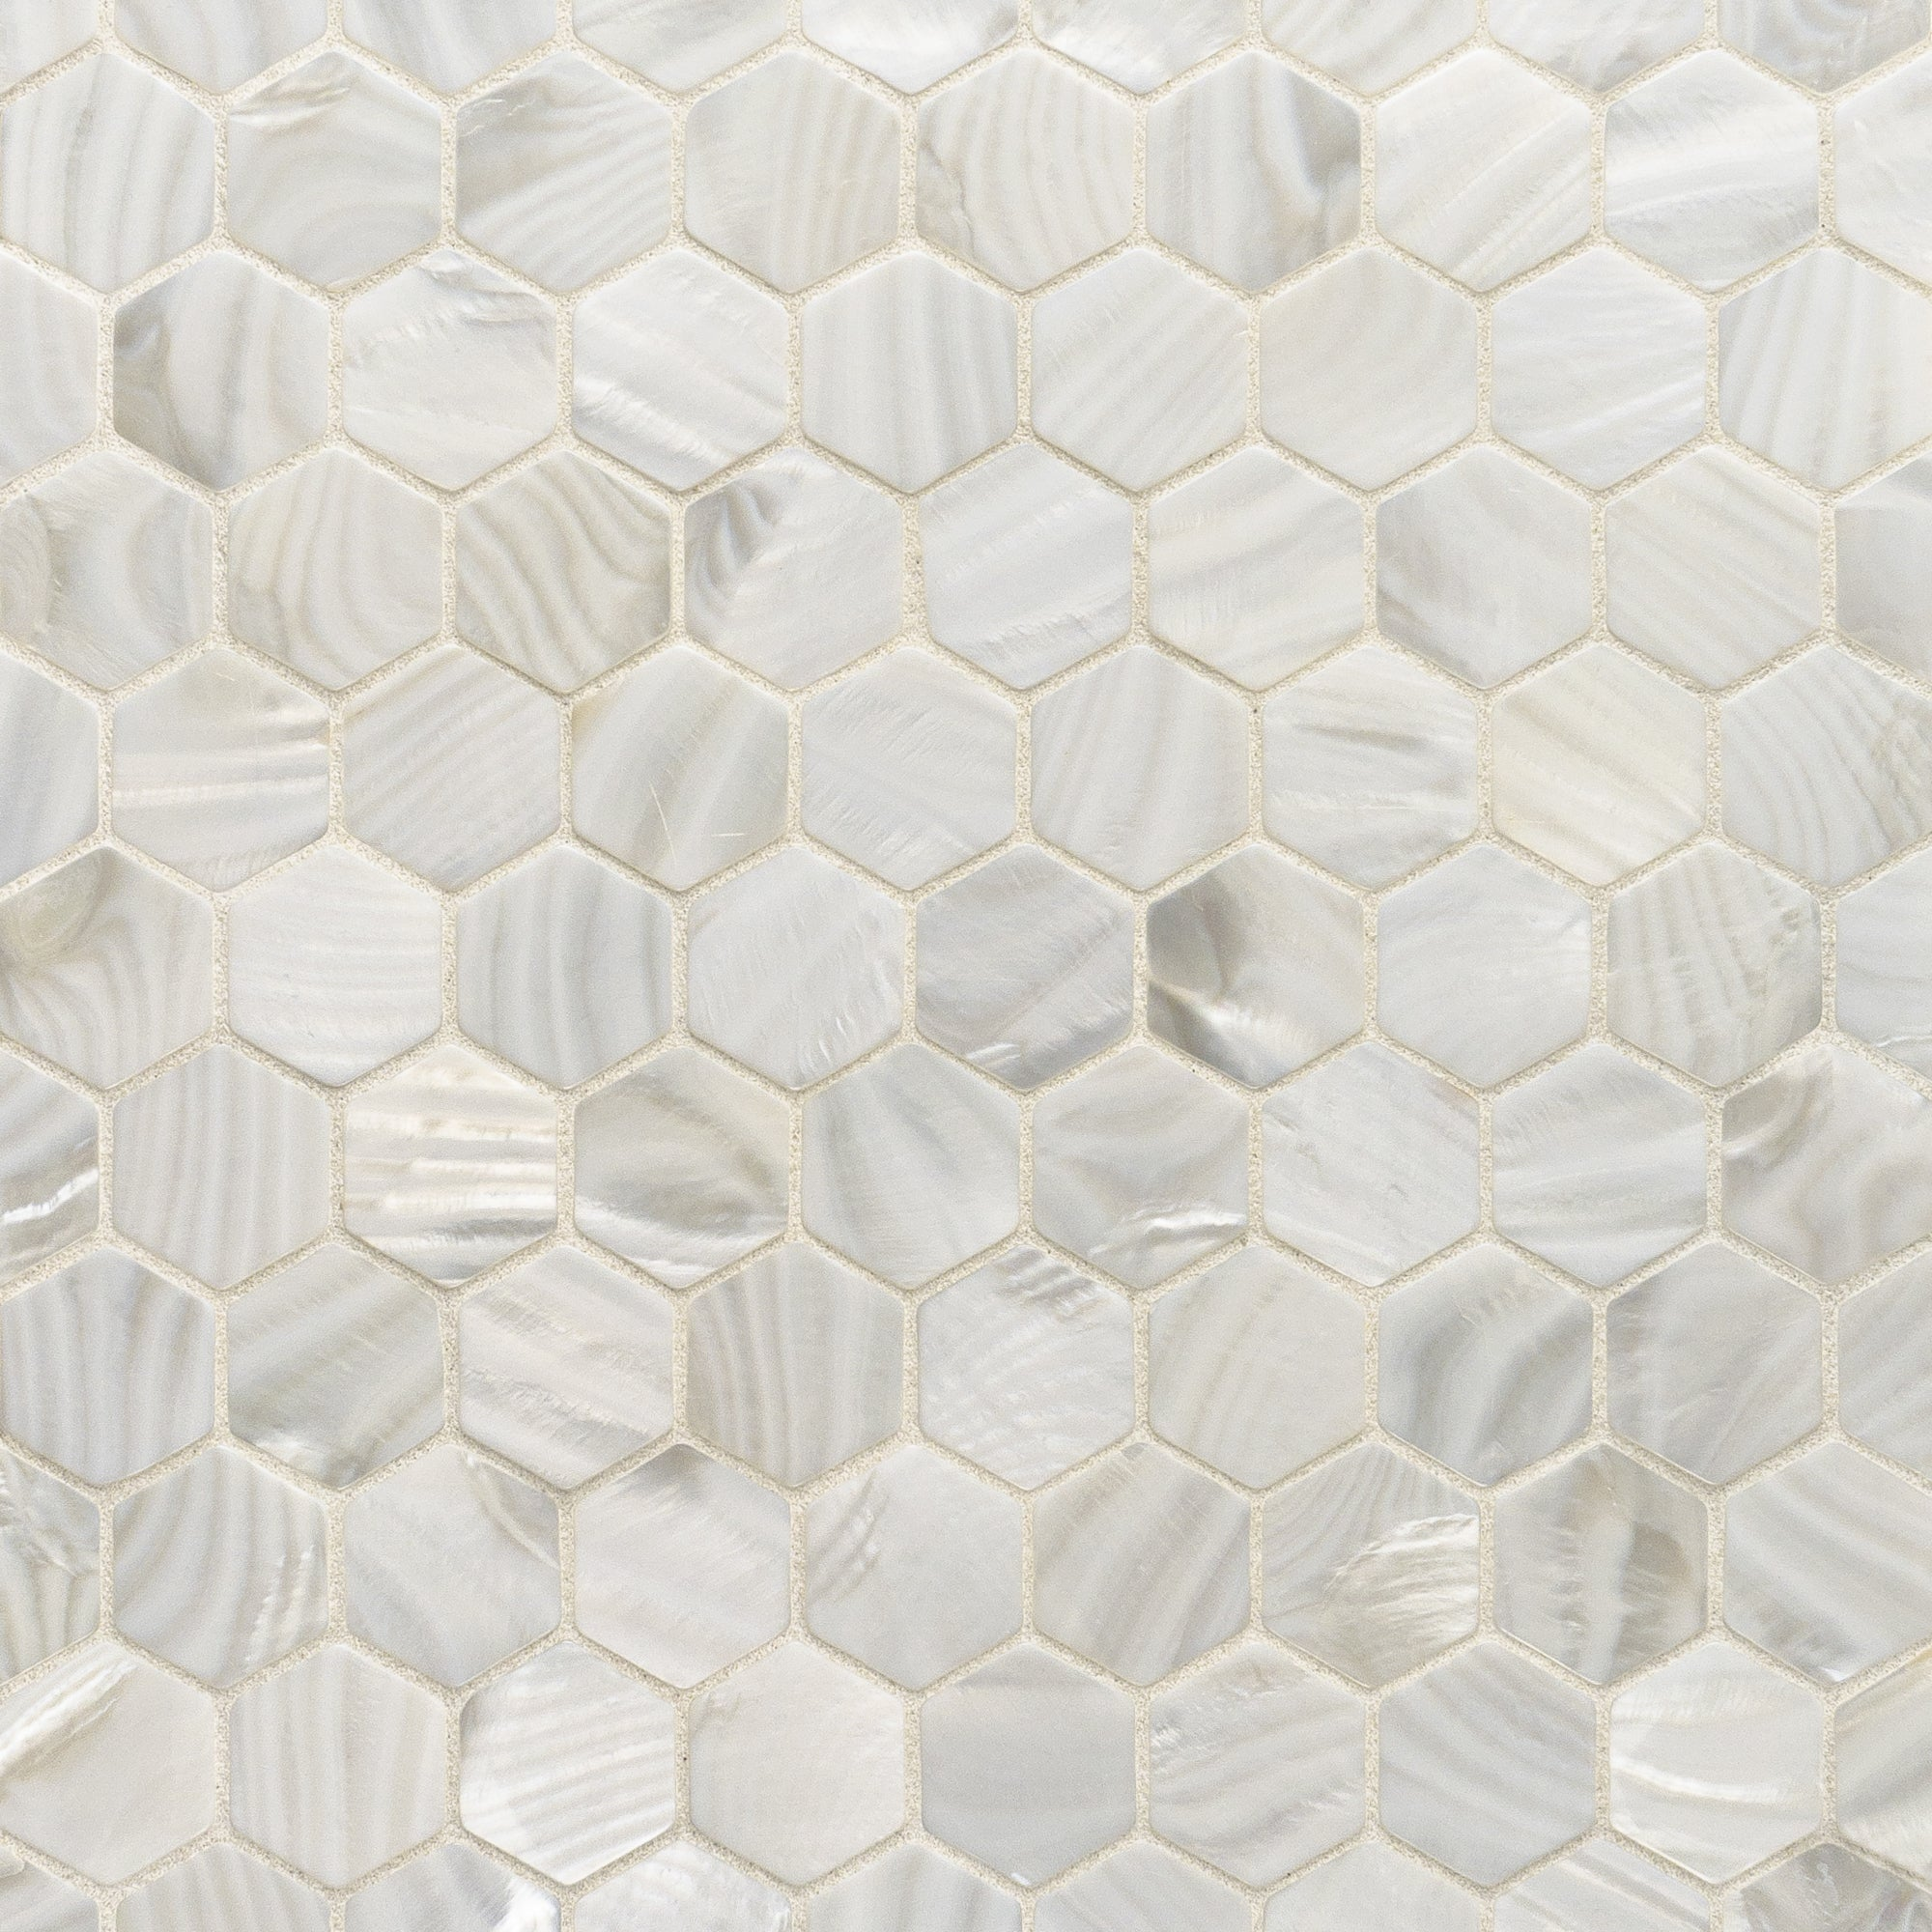 Rivershell White Swatch Card  Polished Samples Hexagon (Unbacked) 3.0cm product photo